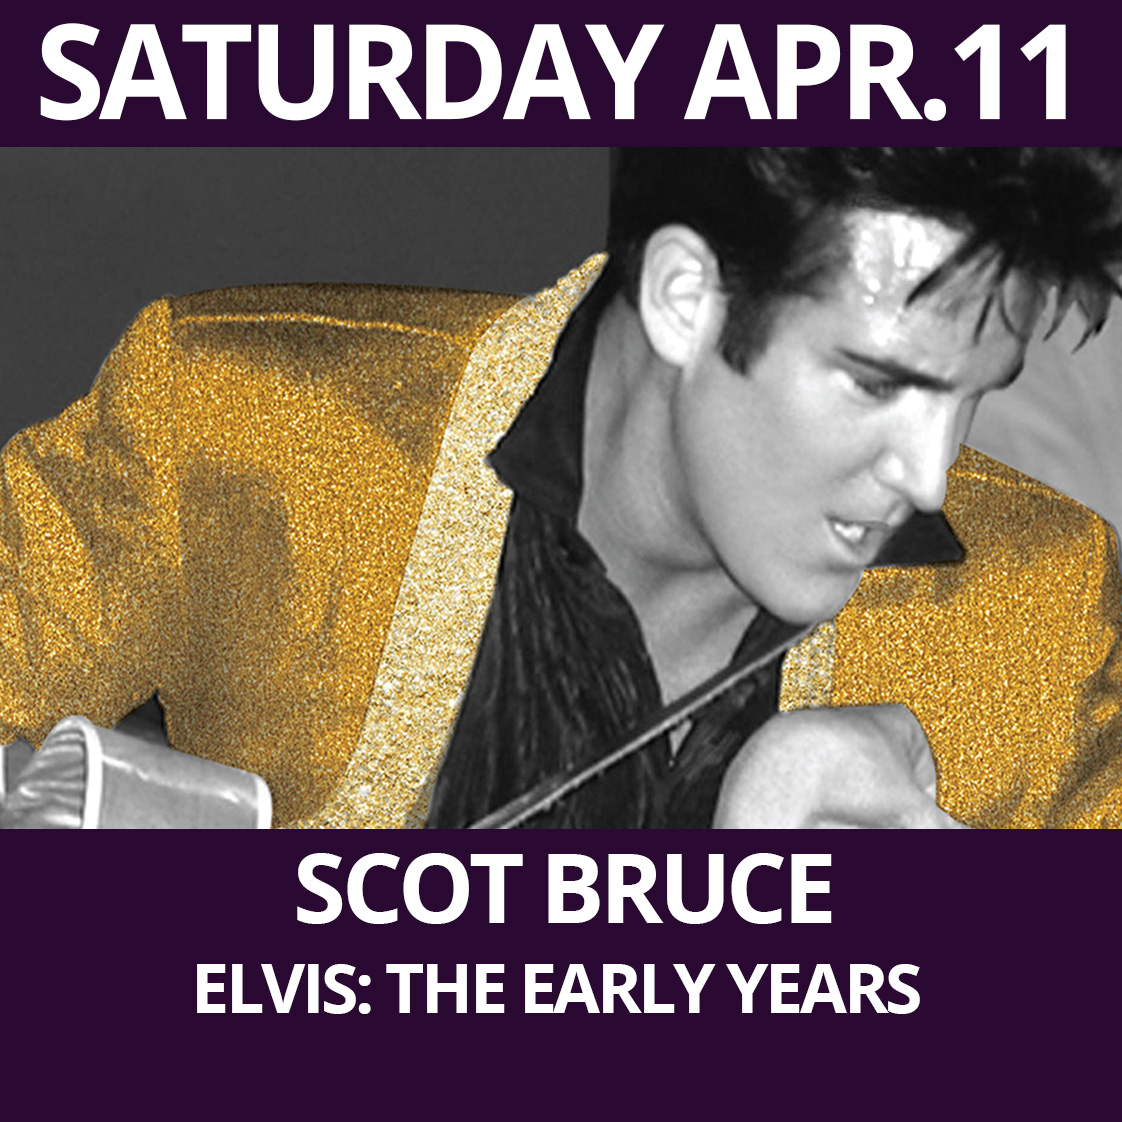 Scot Bruce - Elvis: The Early Years presented at The Purple Room Palm Springs